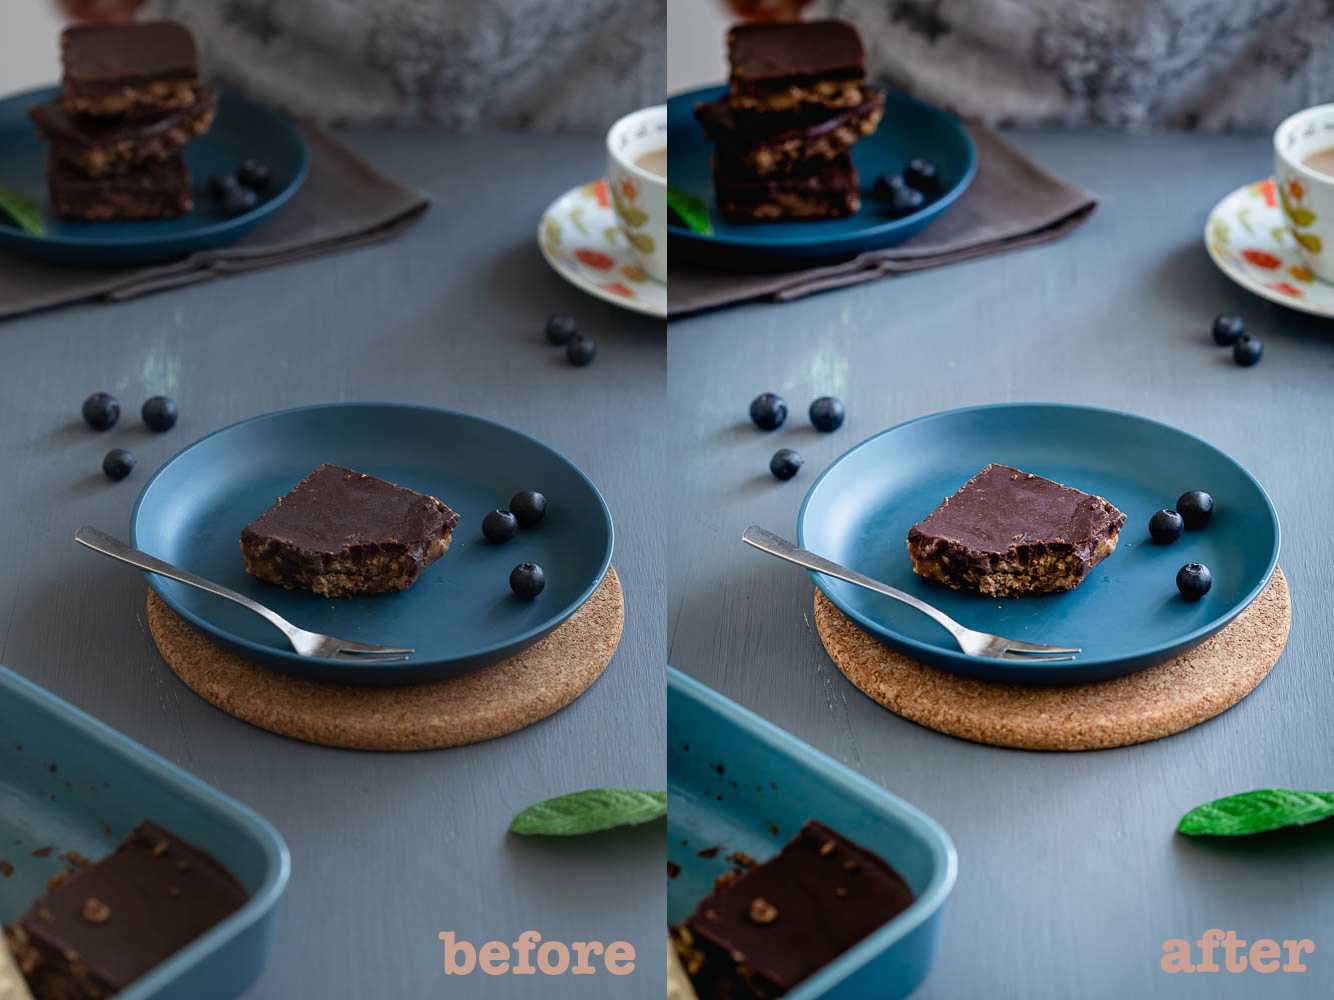 Before and after preset photo of cookie dough cake